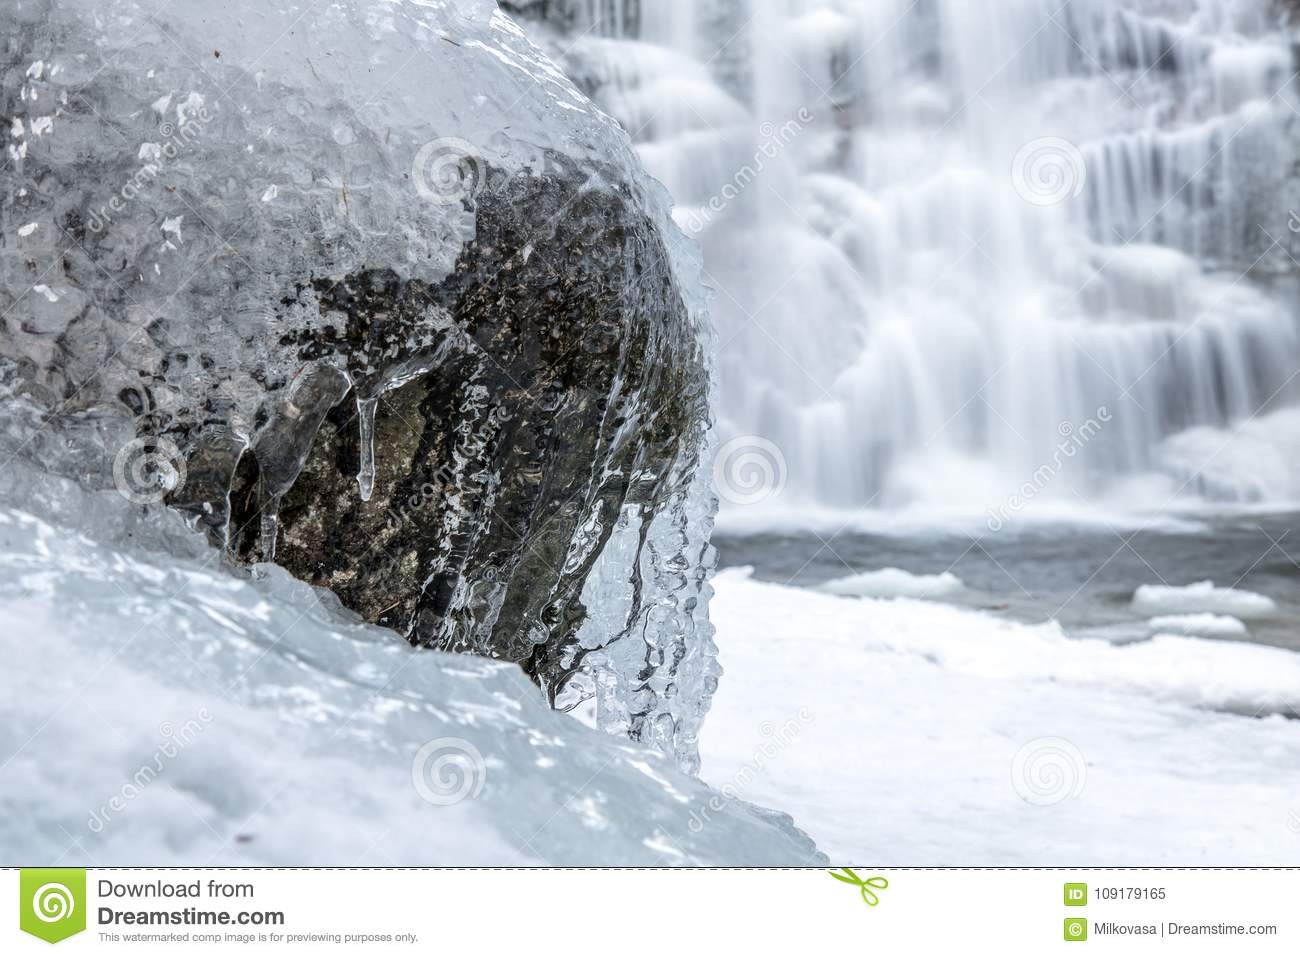 The water stream is froze on the stone